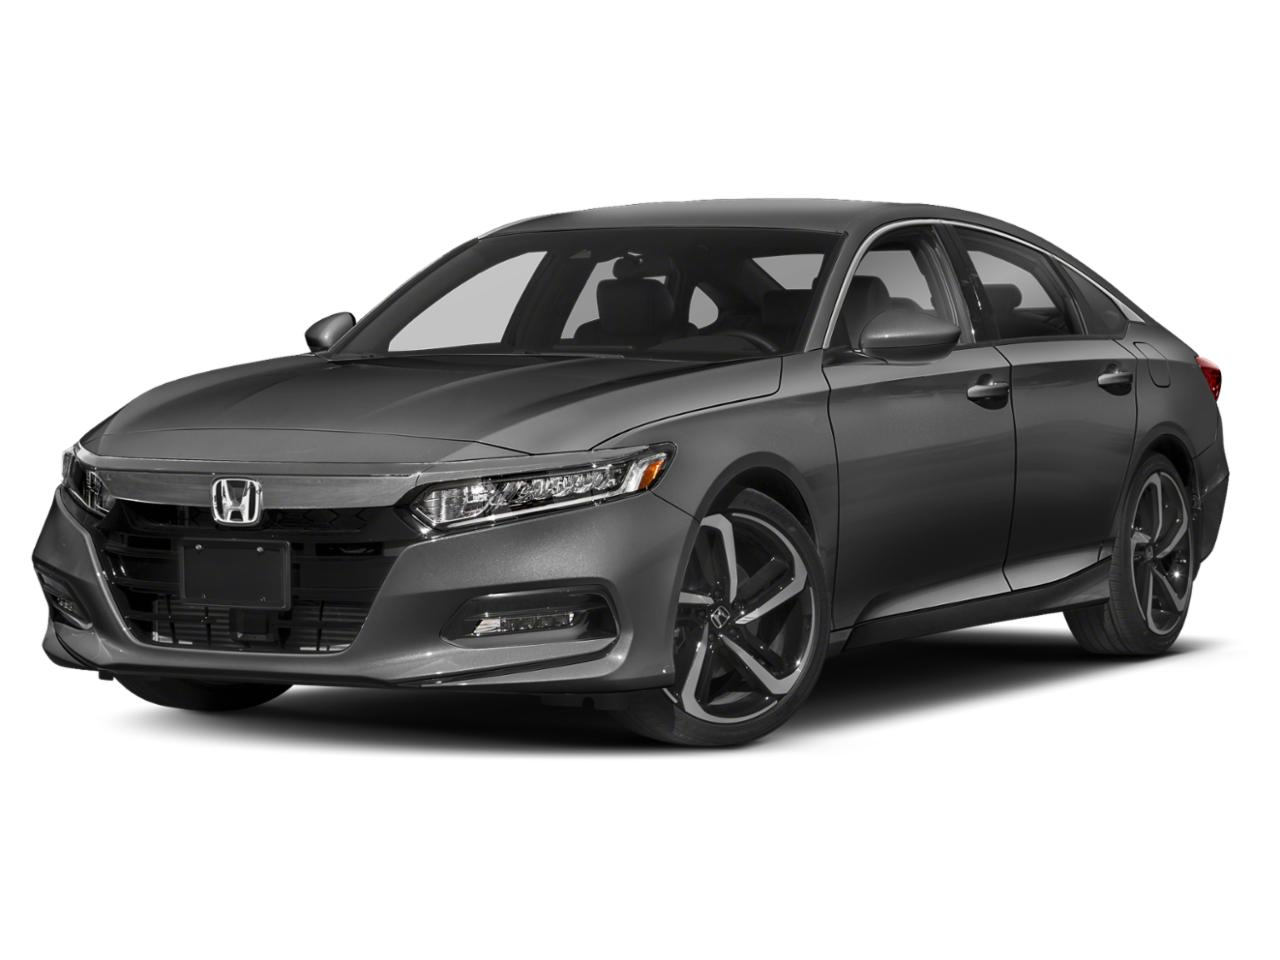 2018 Honda Accord Sedan Vehicle Photo in Danbury, CT 06810